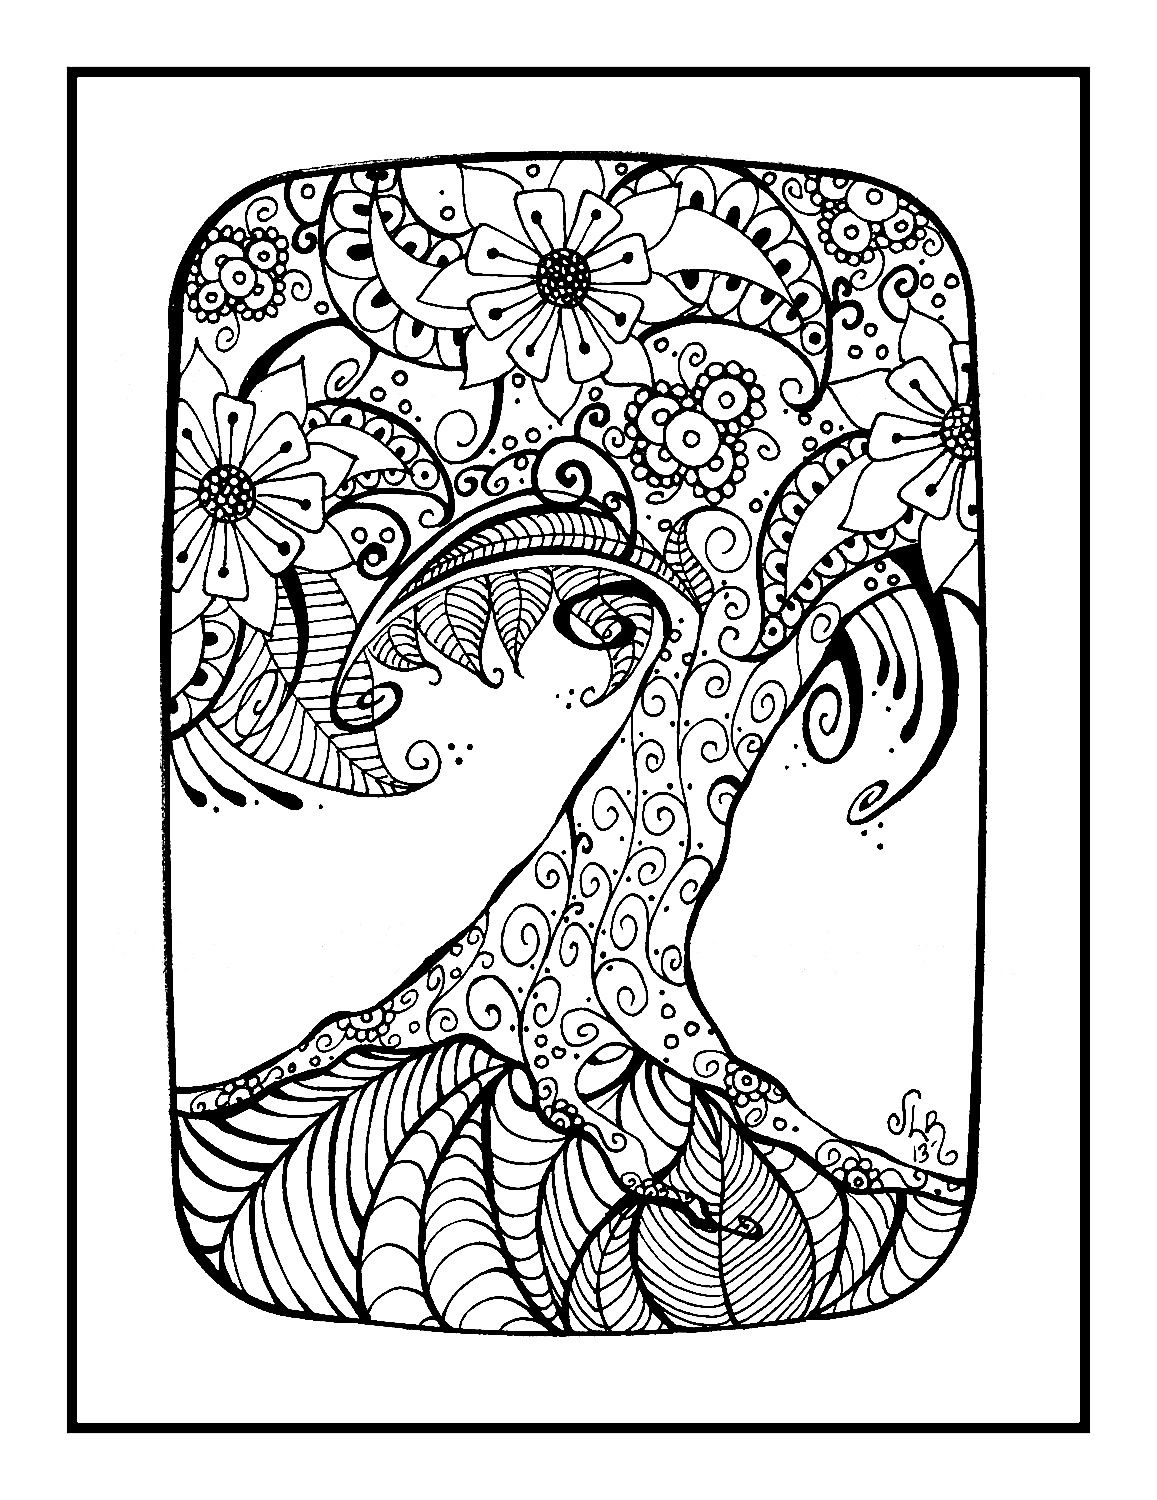 Pin By Dorine Huyghe On School Kleurplaten Henna Tree Coloring Pages Henna Body Art